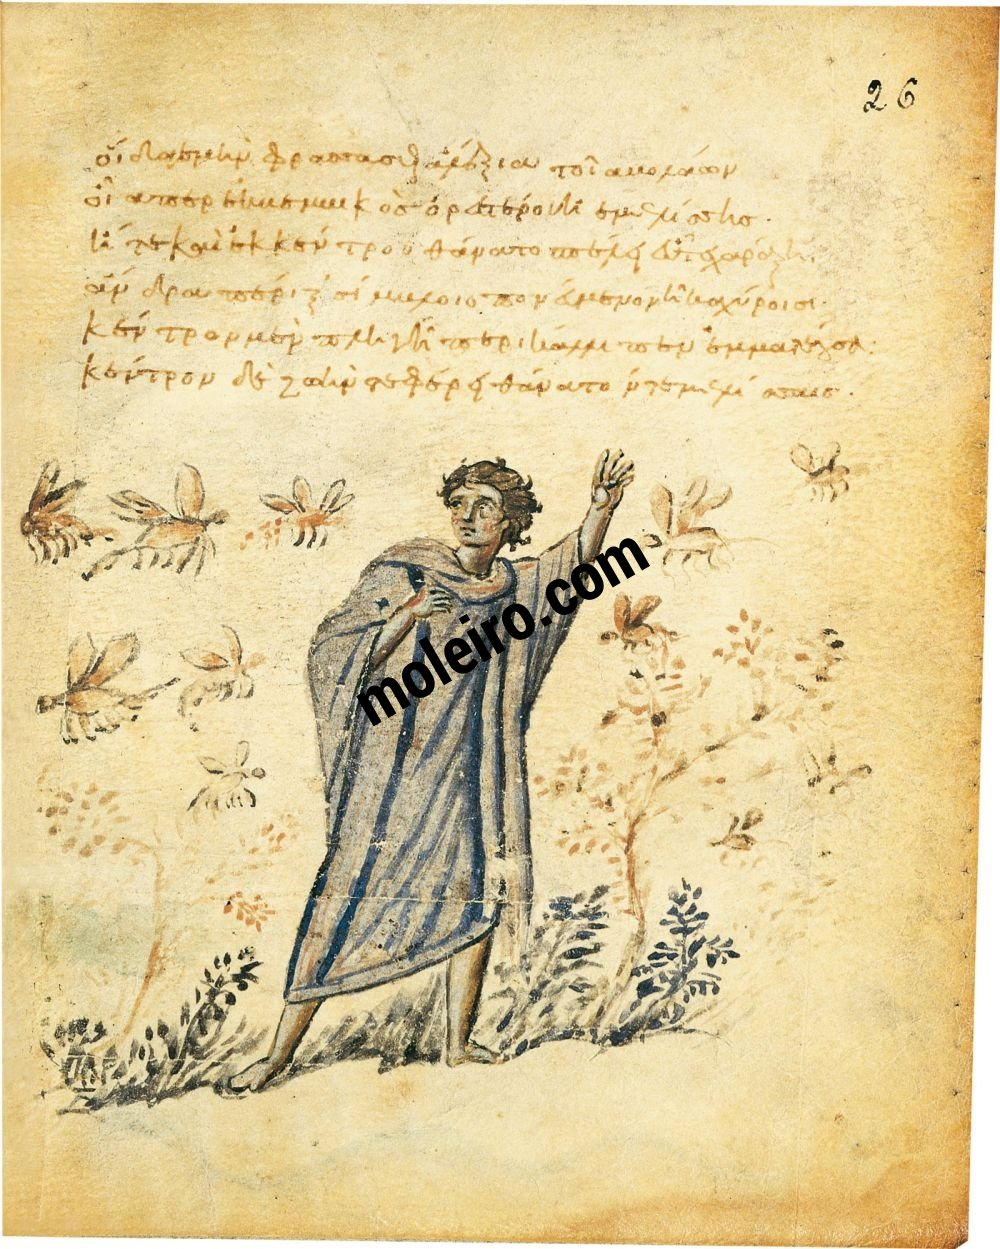 Theriaka and Alexipharmaka by Nicander folio 26r